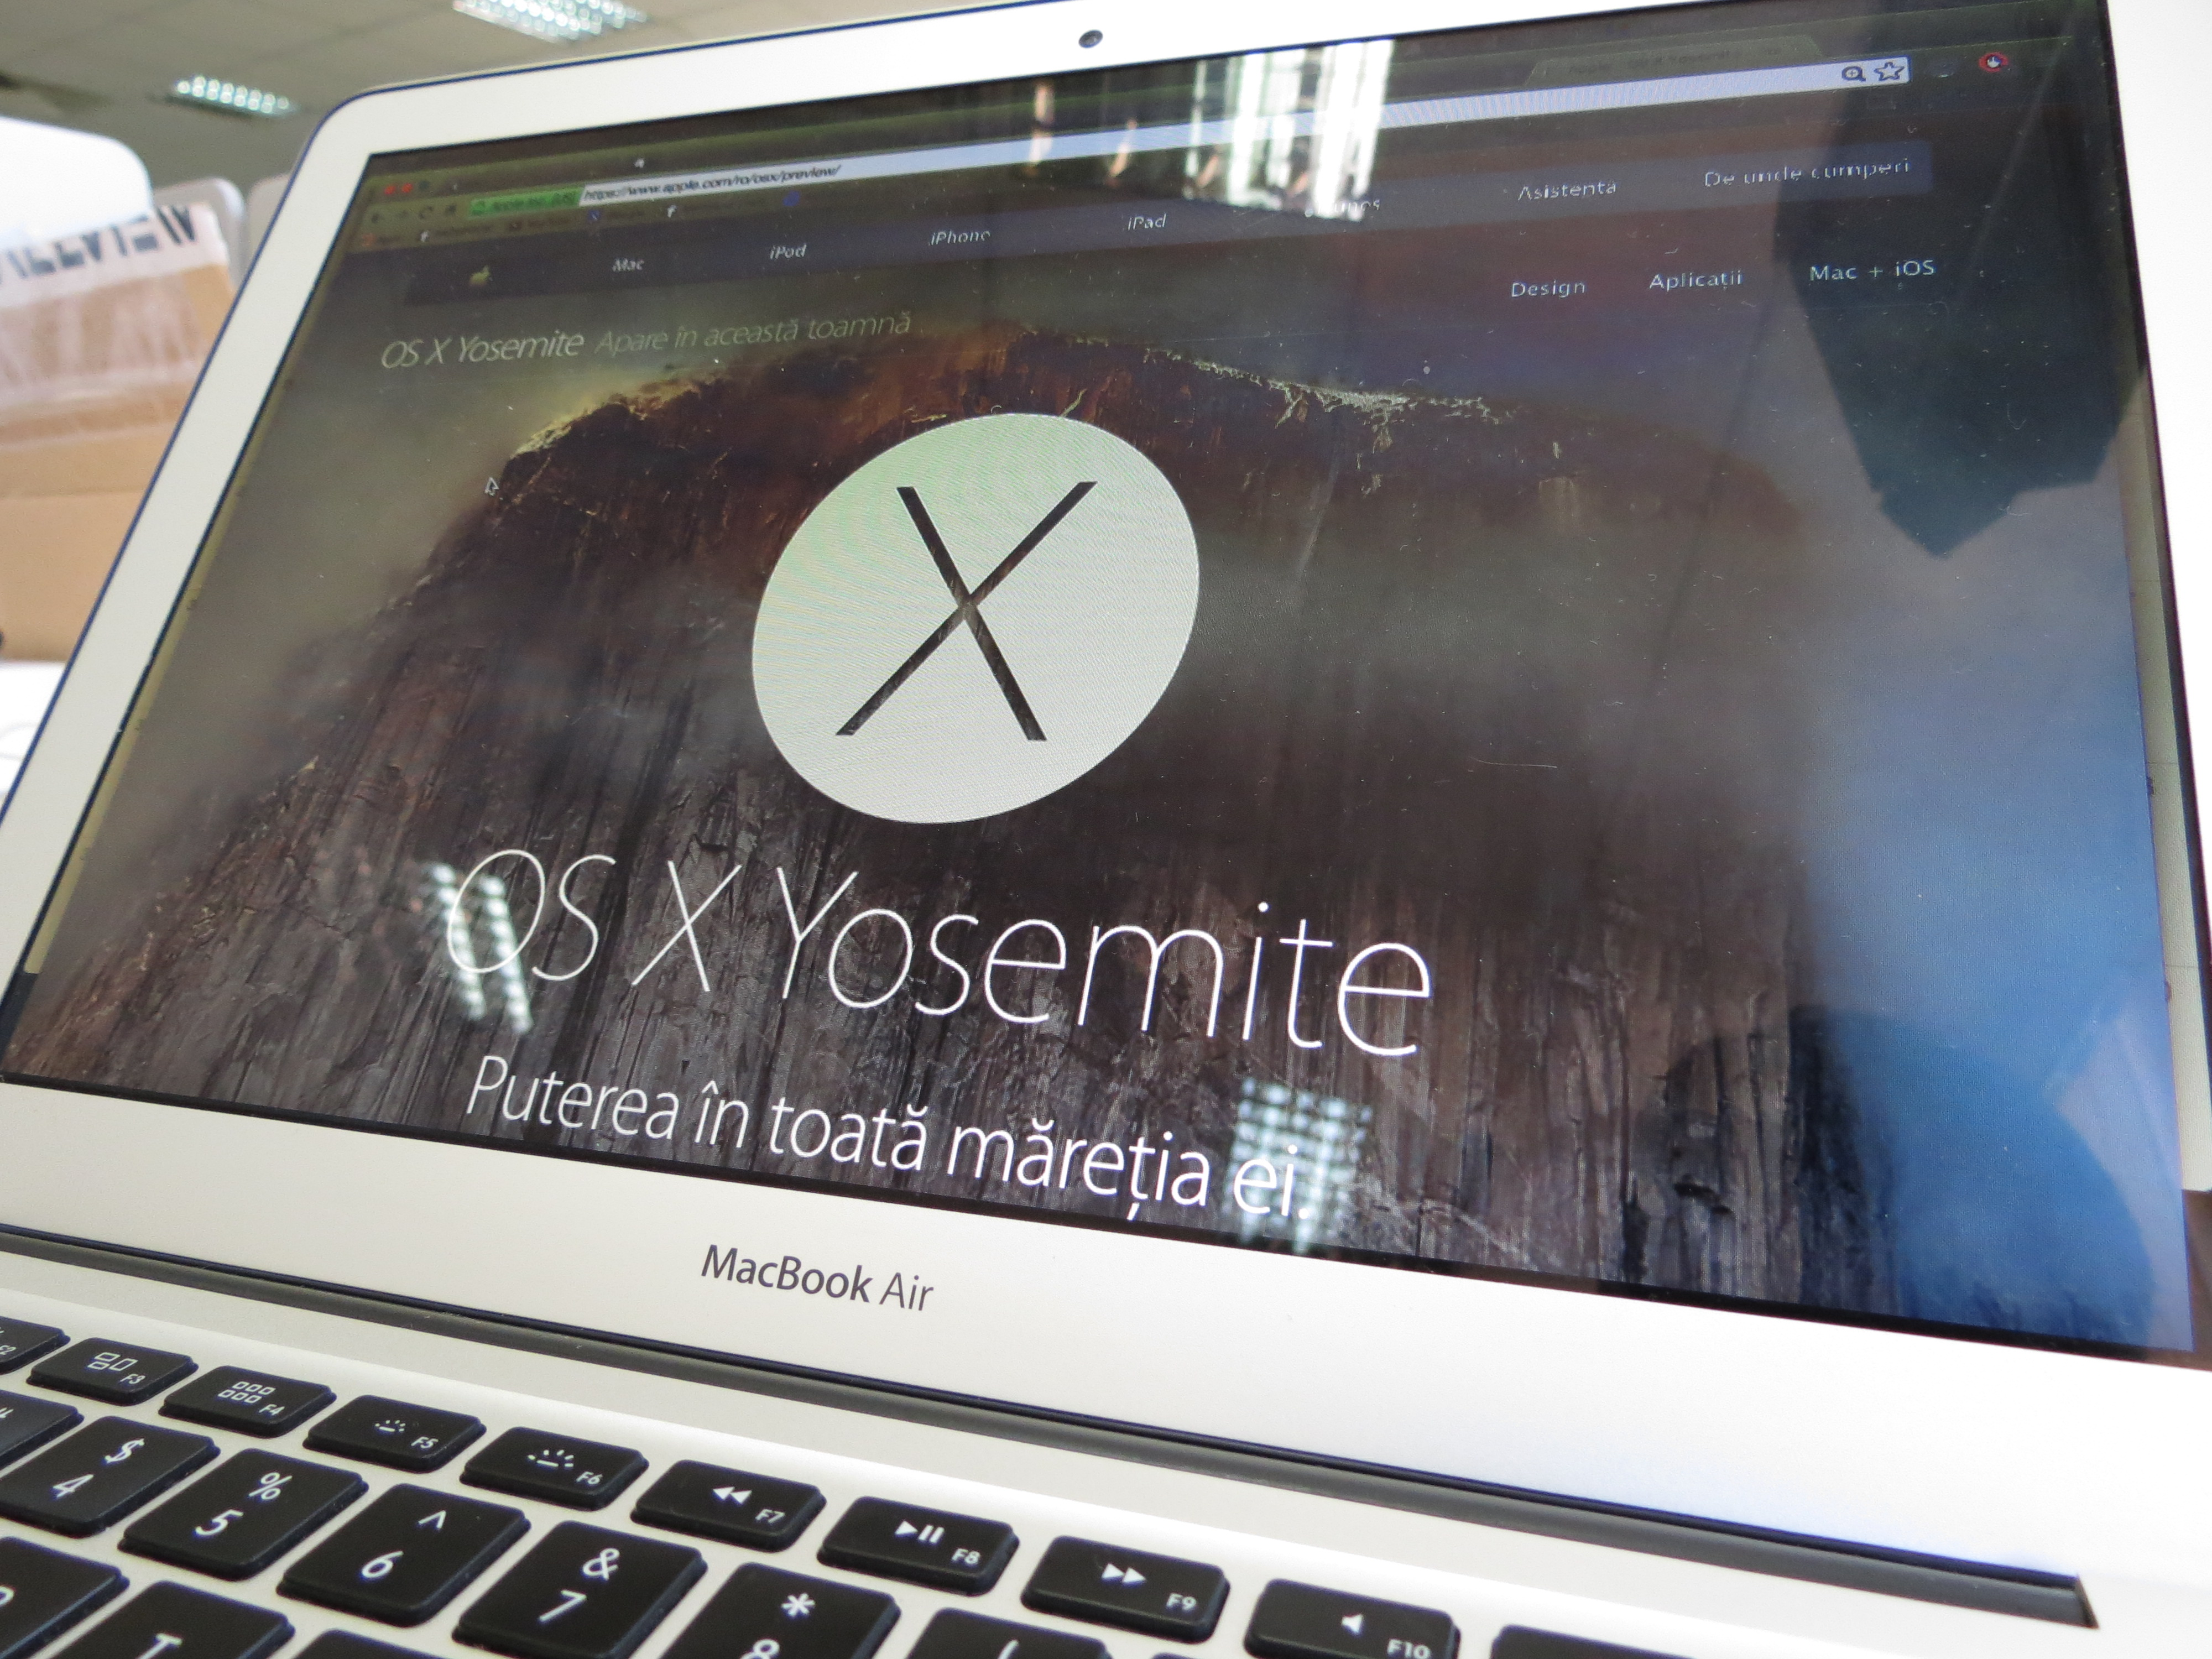 Mac OS X Yosemite – primele impresii [PREVIEW]